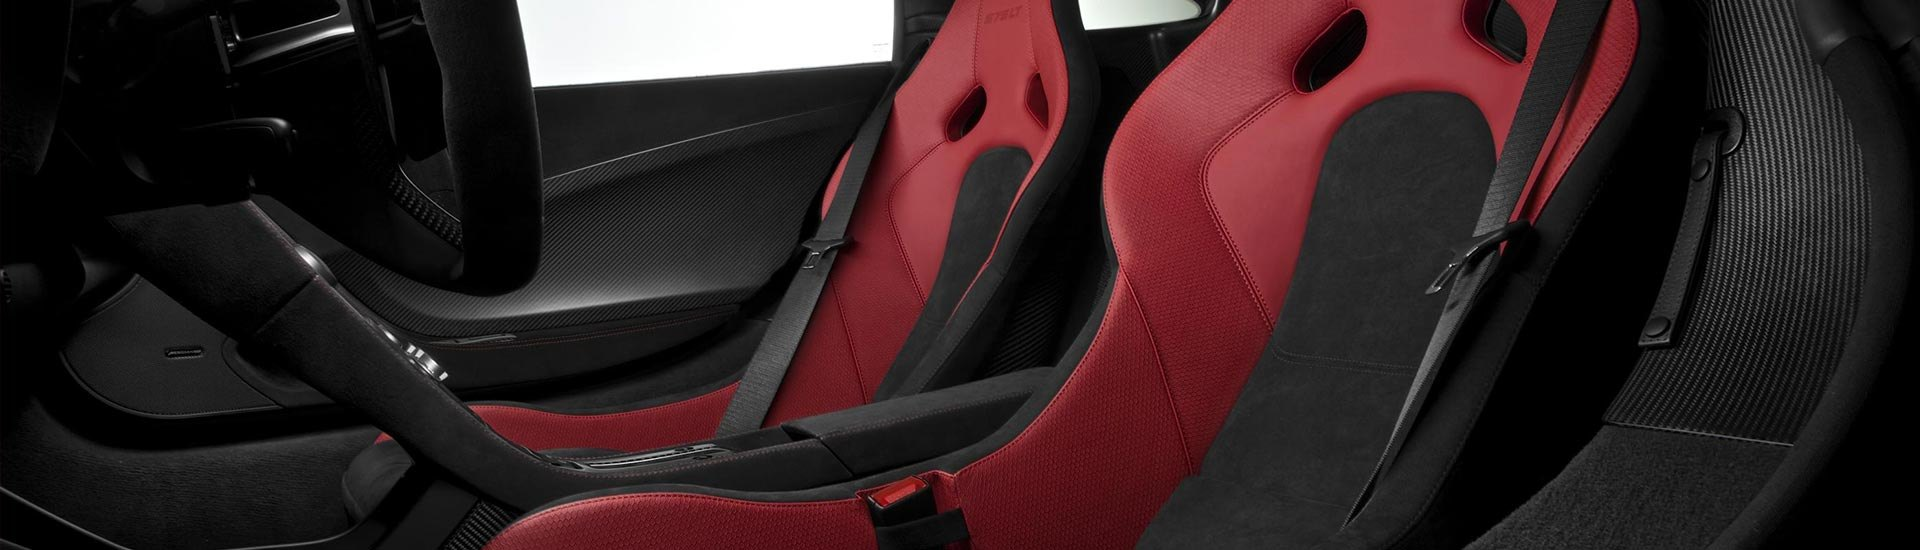 Subaru WRX Racing Seats - 2006